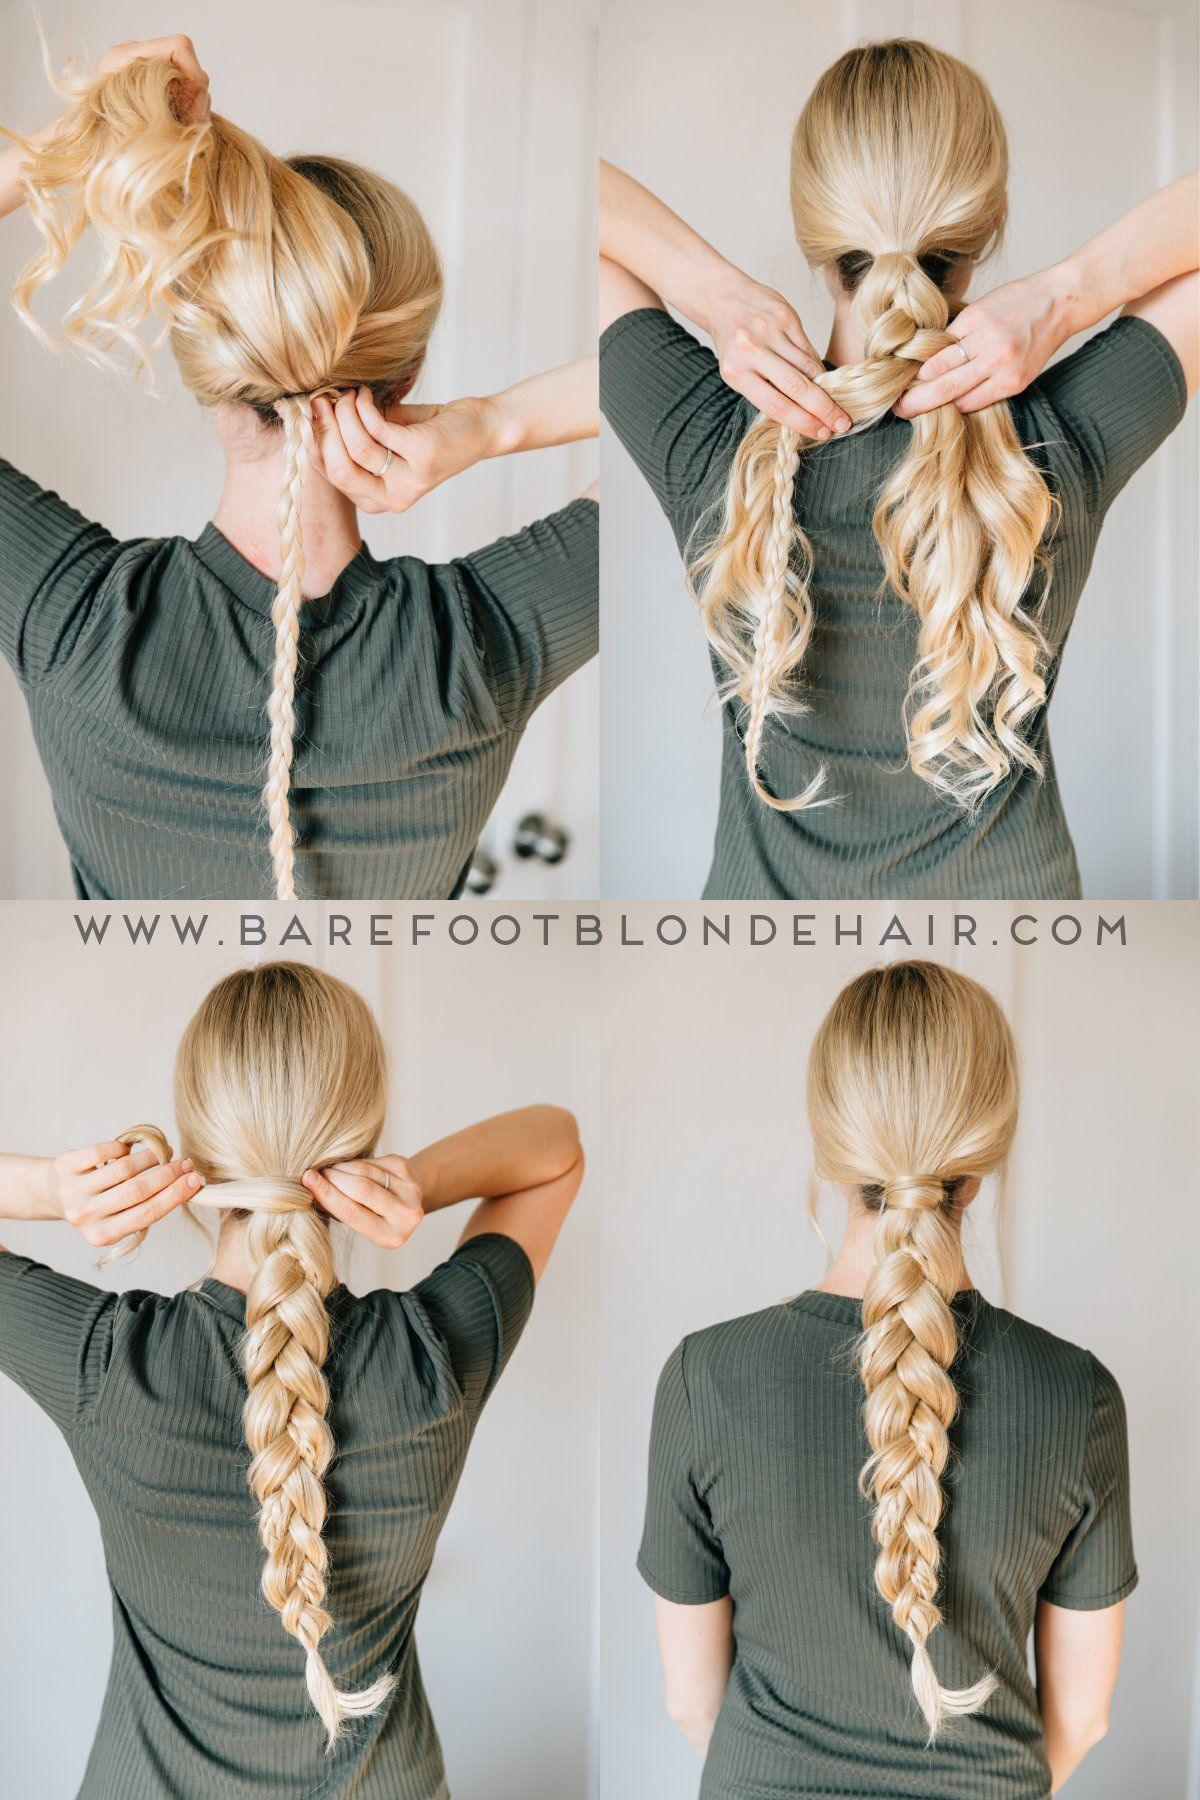 2 Ways To Braid Your Hair With Hair Extensions For Thin Hair Braiding Your Own Hair Braids For Long Hair Long Hair Styles